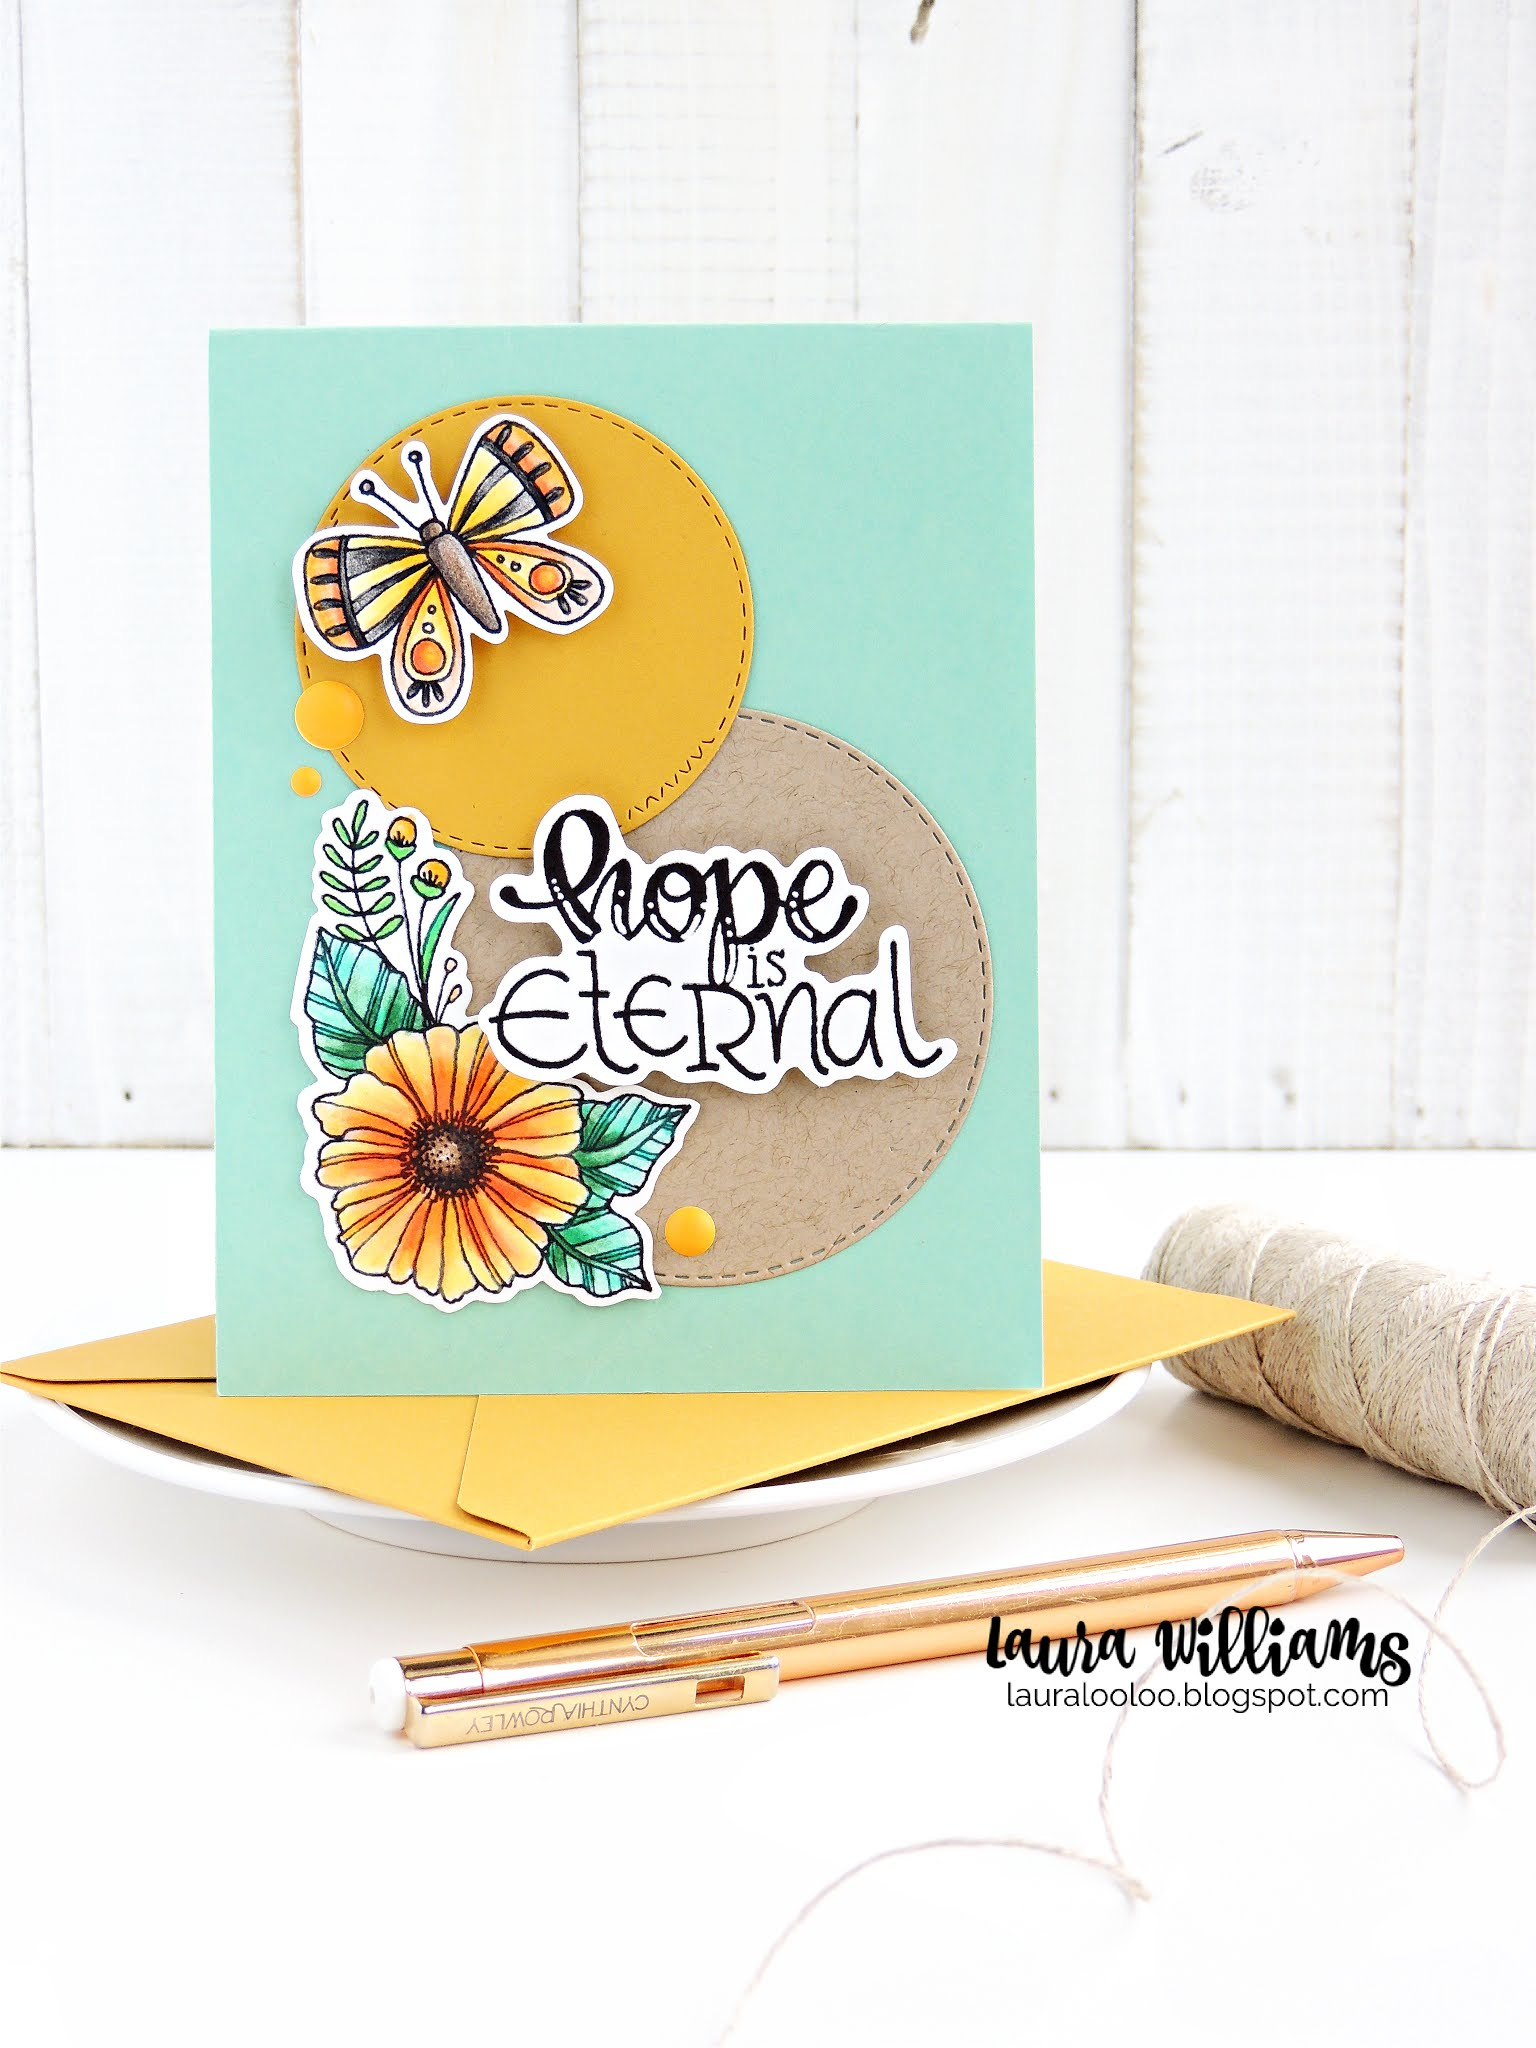 Are you looking for ideas to make a handmade card for Easter or springtime? Try these ideas with stamps and dies from Impression Obsession. The Hope is Eternal sentiment stamp is an encouraging sentiment for someone you love. Visit my blog to see more about this idea and others using stamps and dies from IO Stamps.